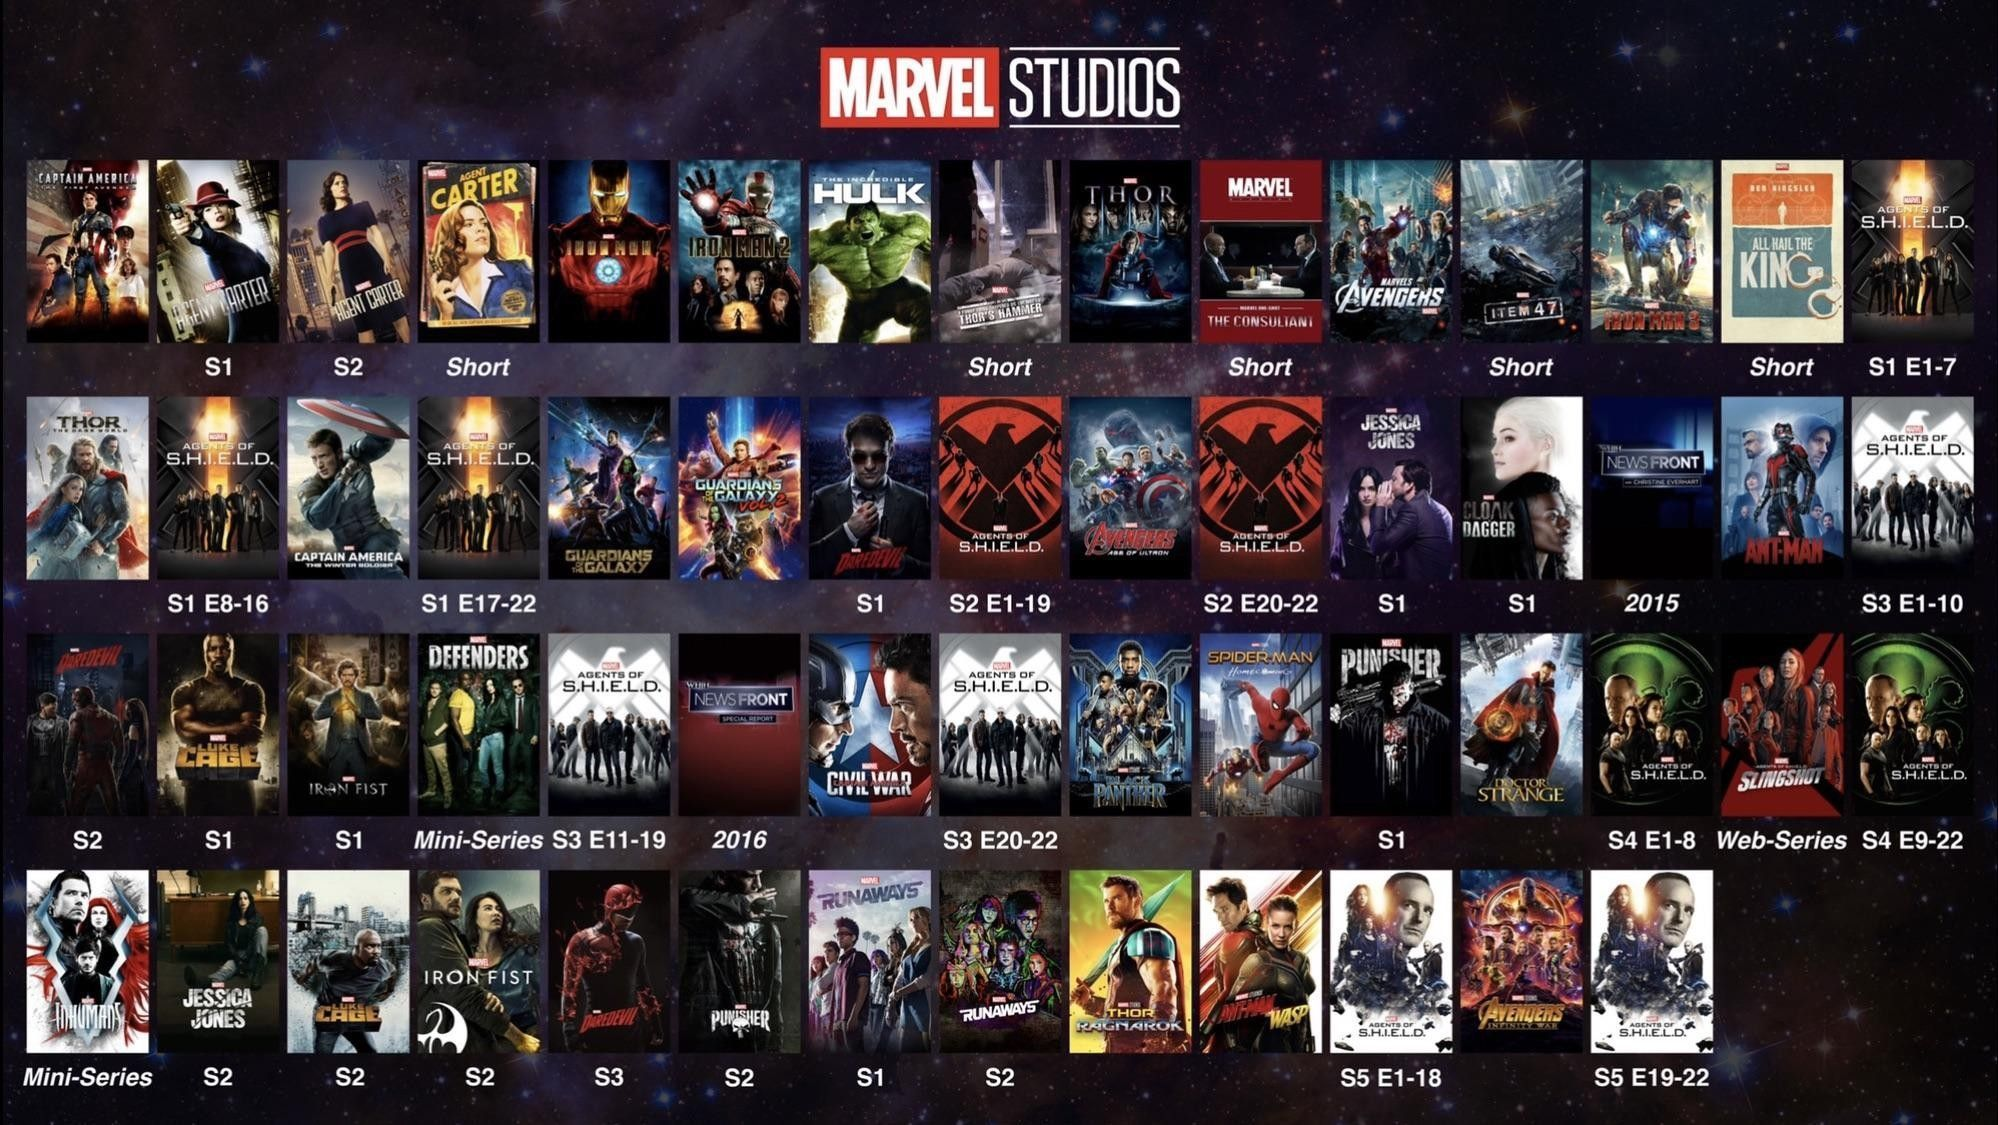 The ultimate Marvel Cinematic Universal timeline in